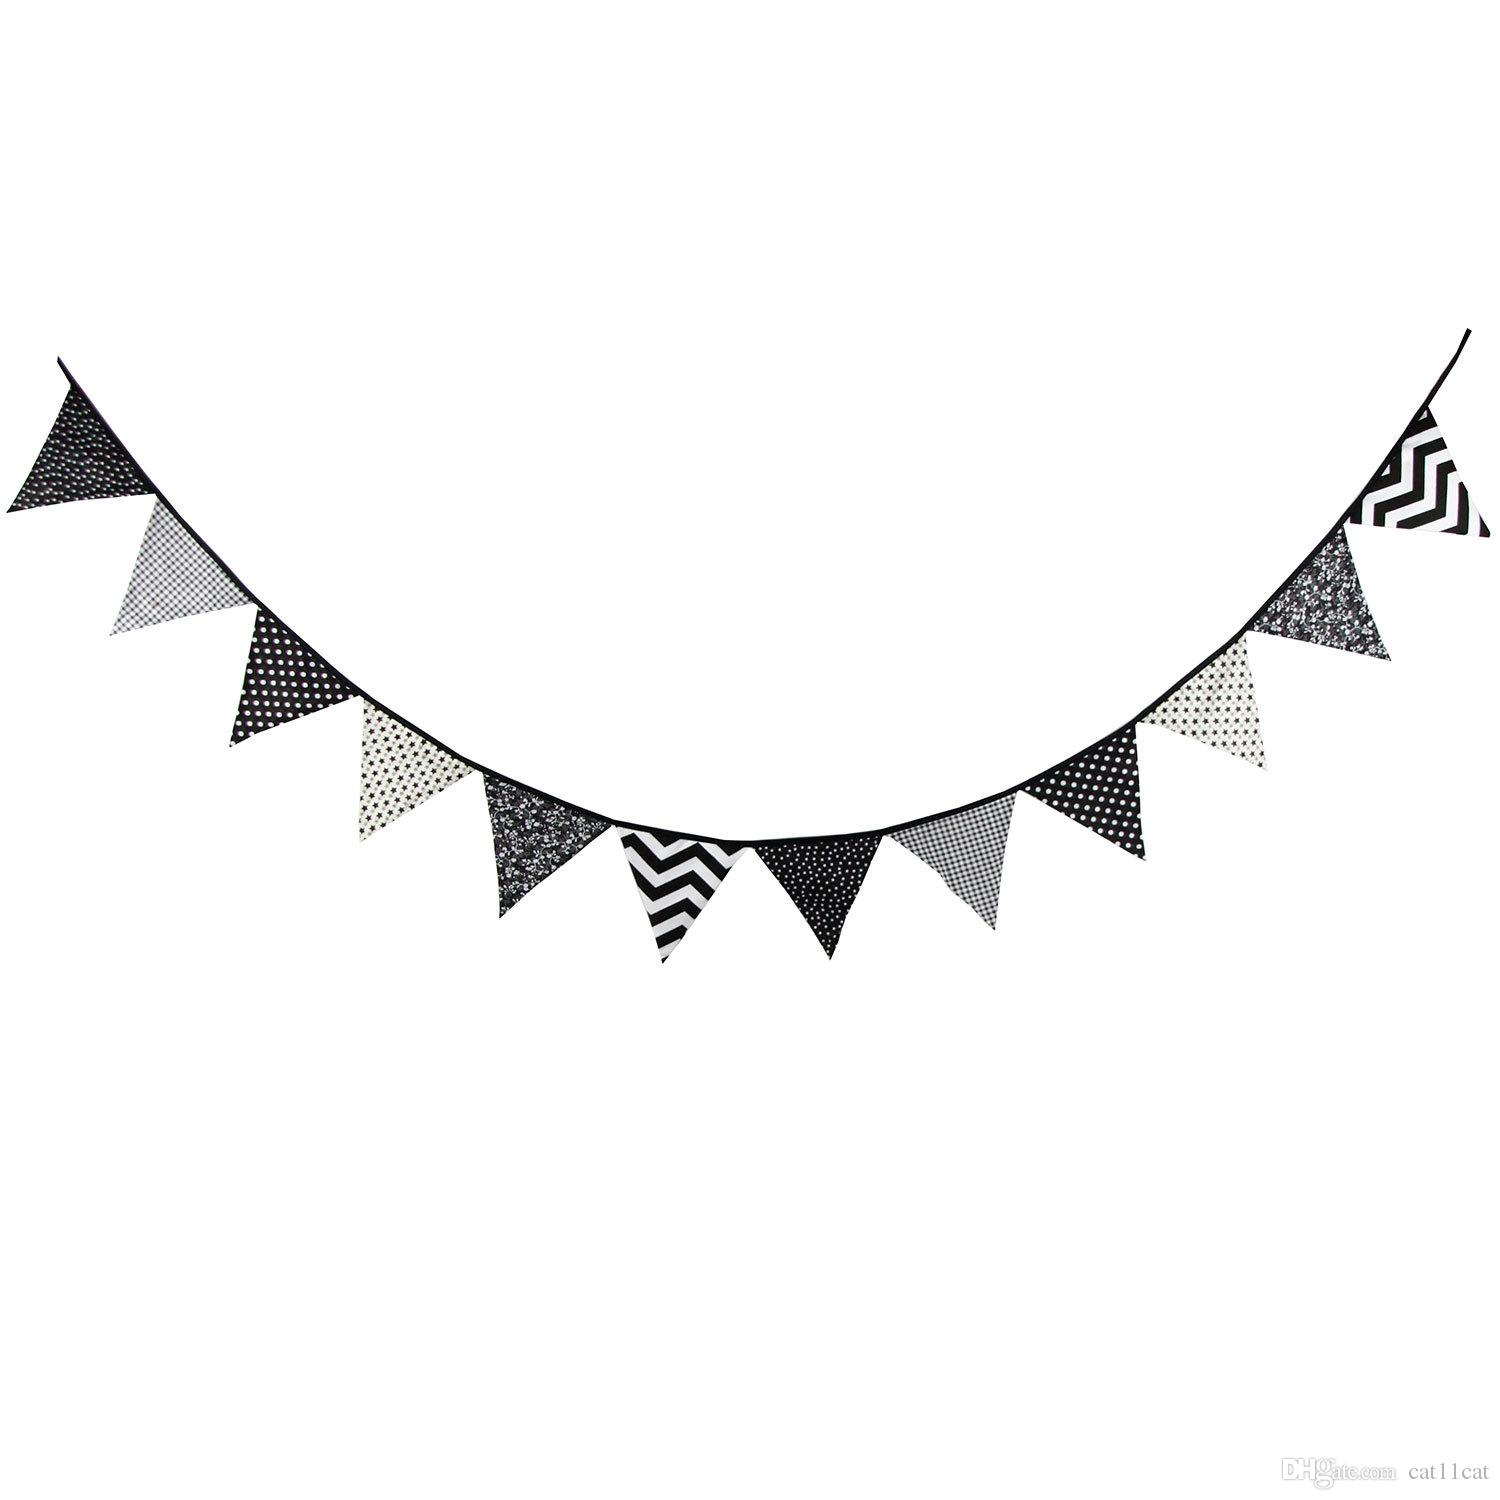 12 Flags 3.2m Special Black and White Cotton Fabric Bunting Pennant Flags Banner Garland Baby Shower/Outdoor Tent Decoration